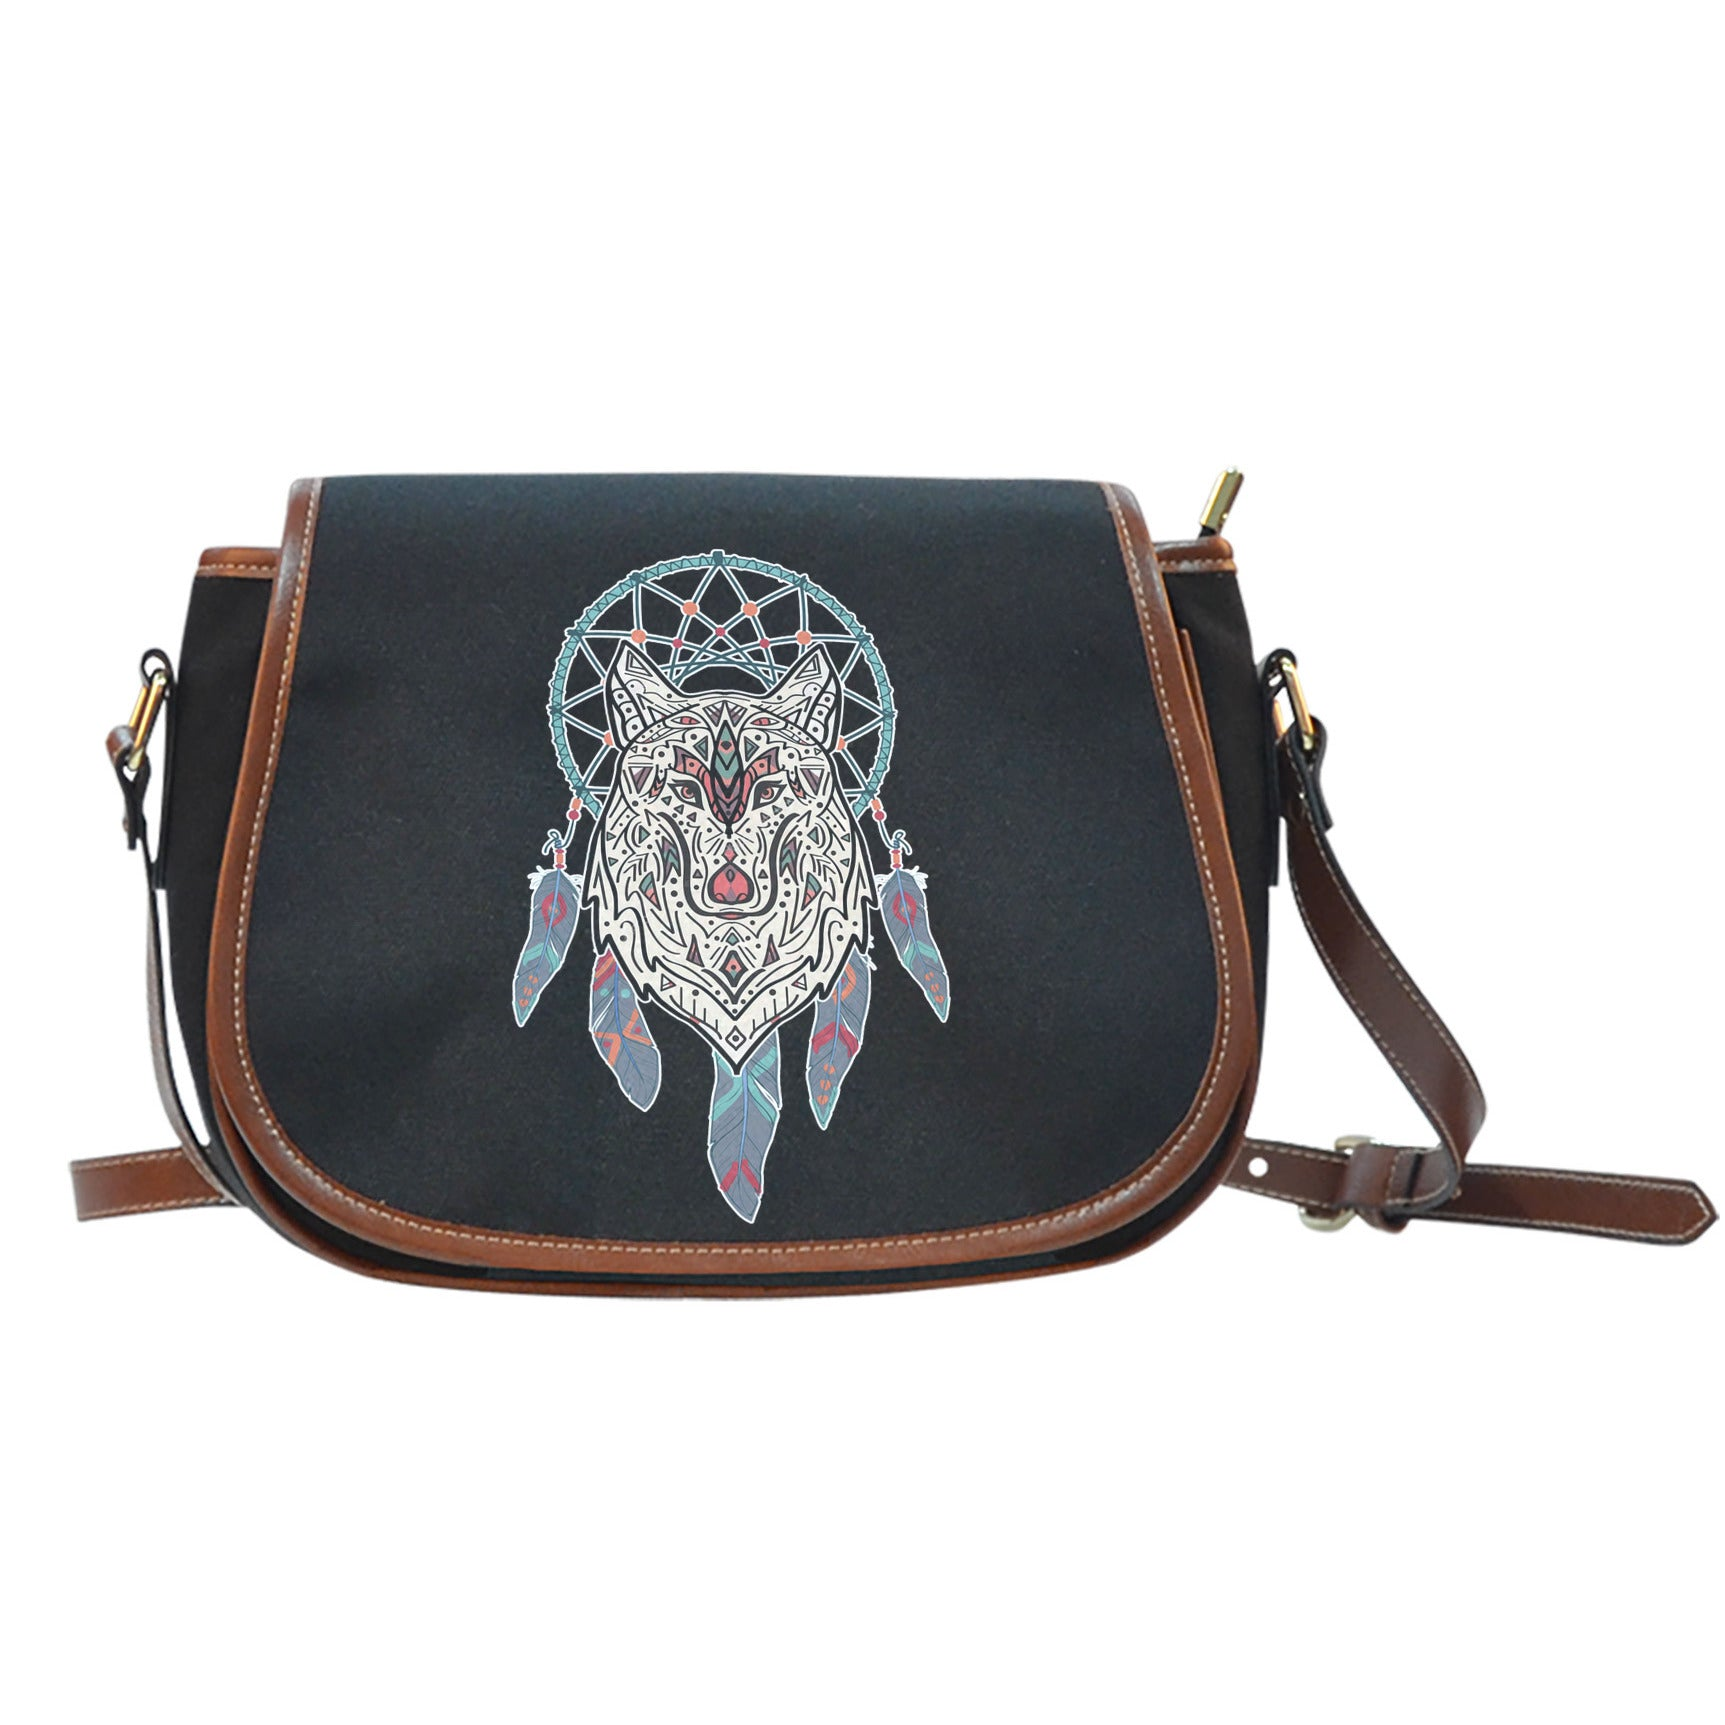 NATIVE DREAMCATCHER SADDLE BAG